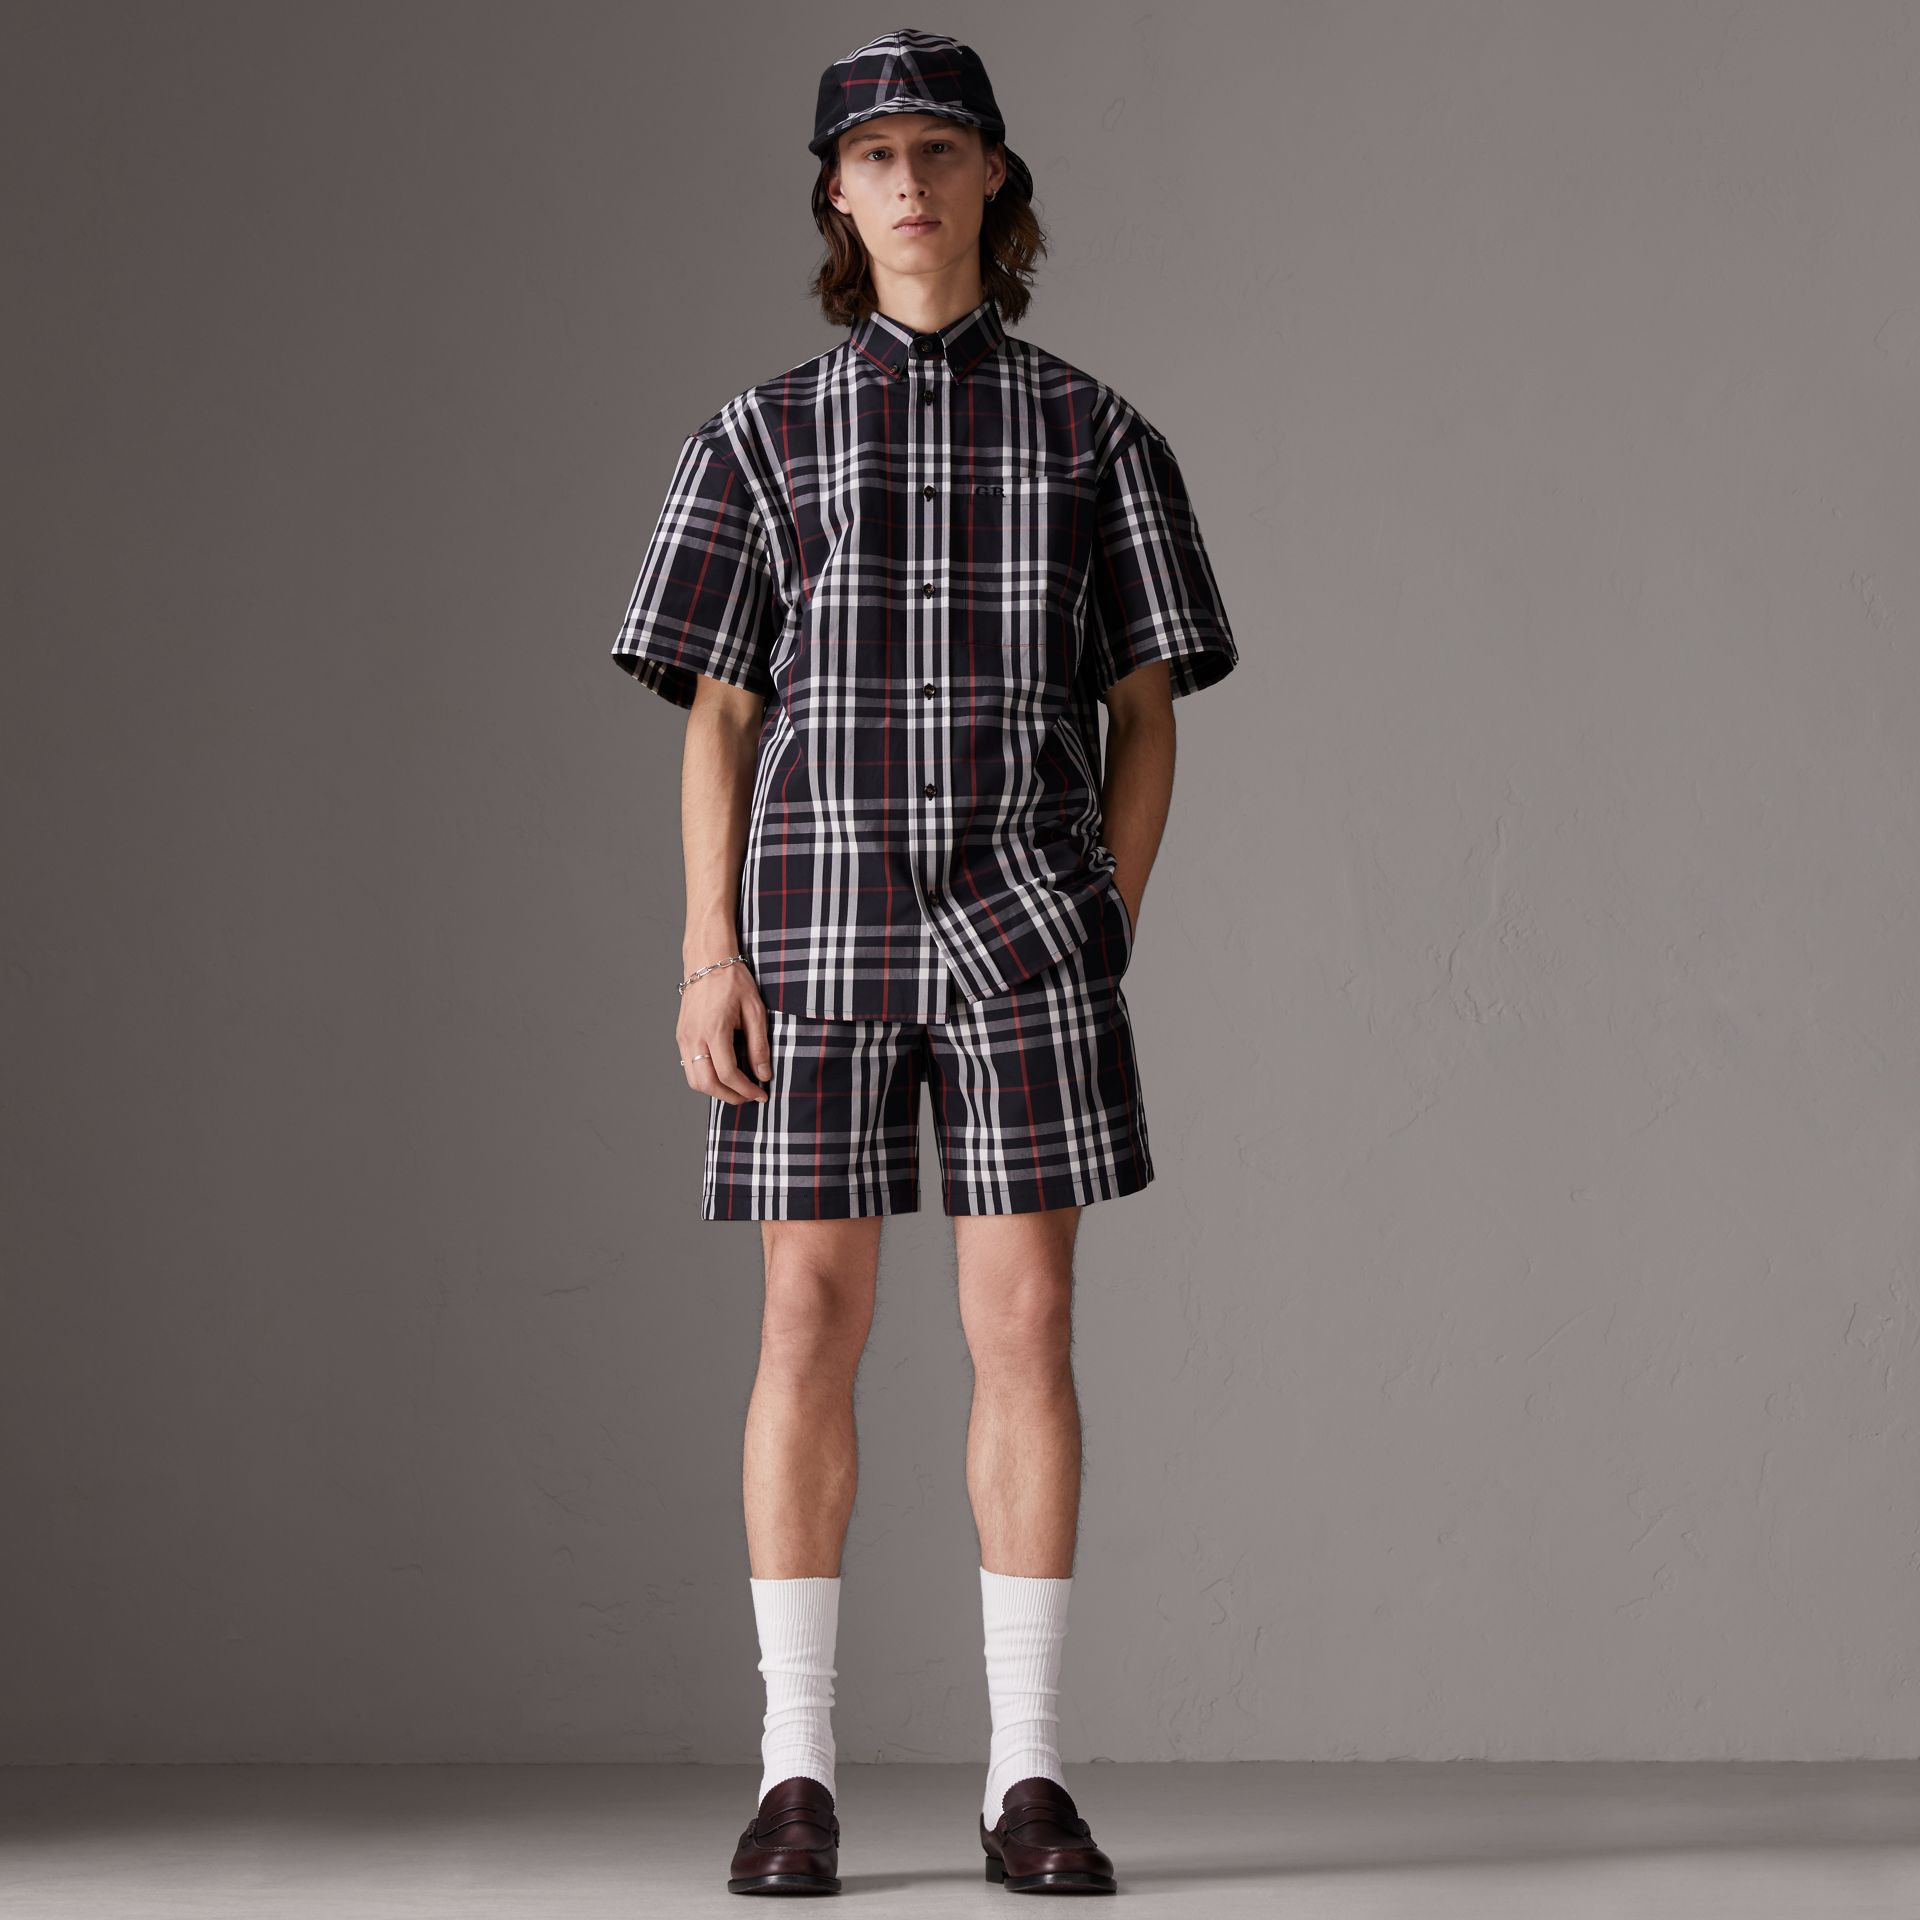 Gosha x Burberry Short-sleeve Check Shirt in Navy - Men | Burberry United Kingdom - gallery image 2